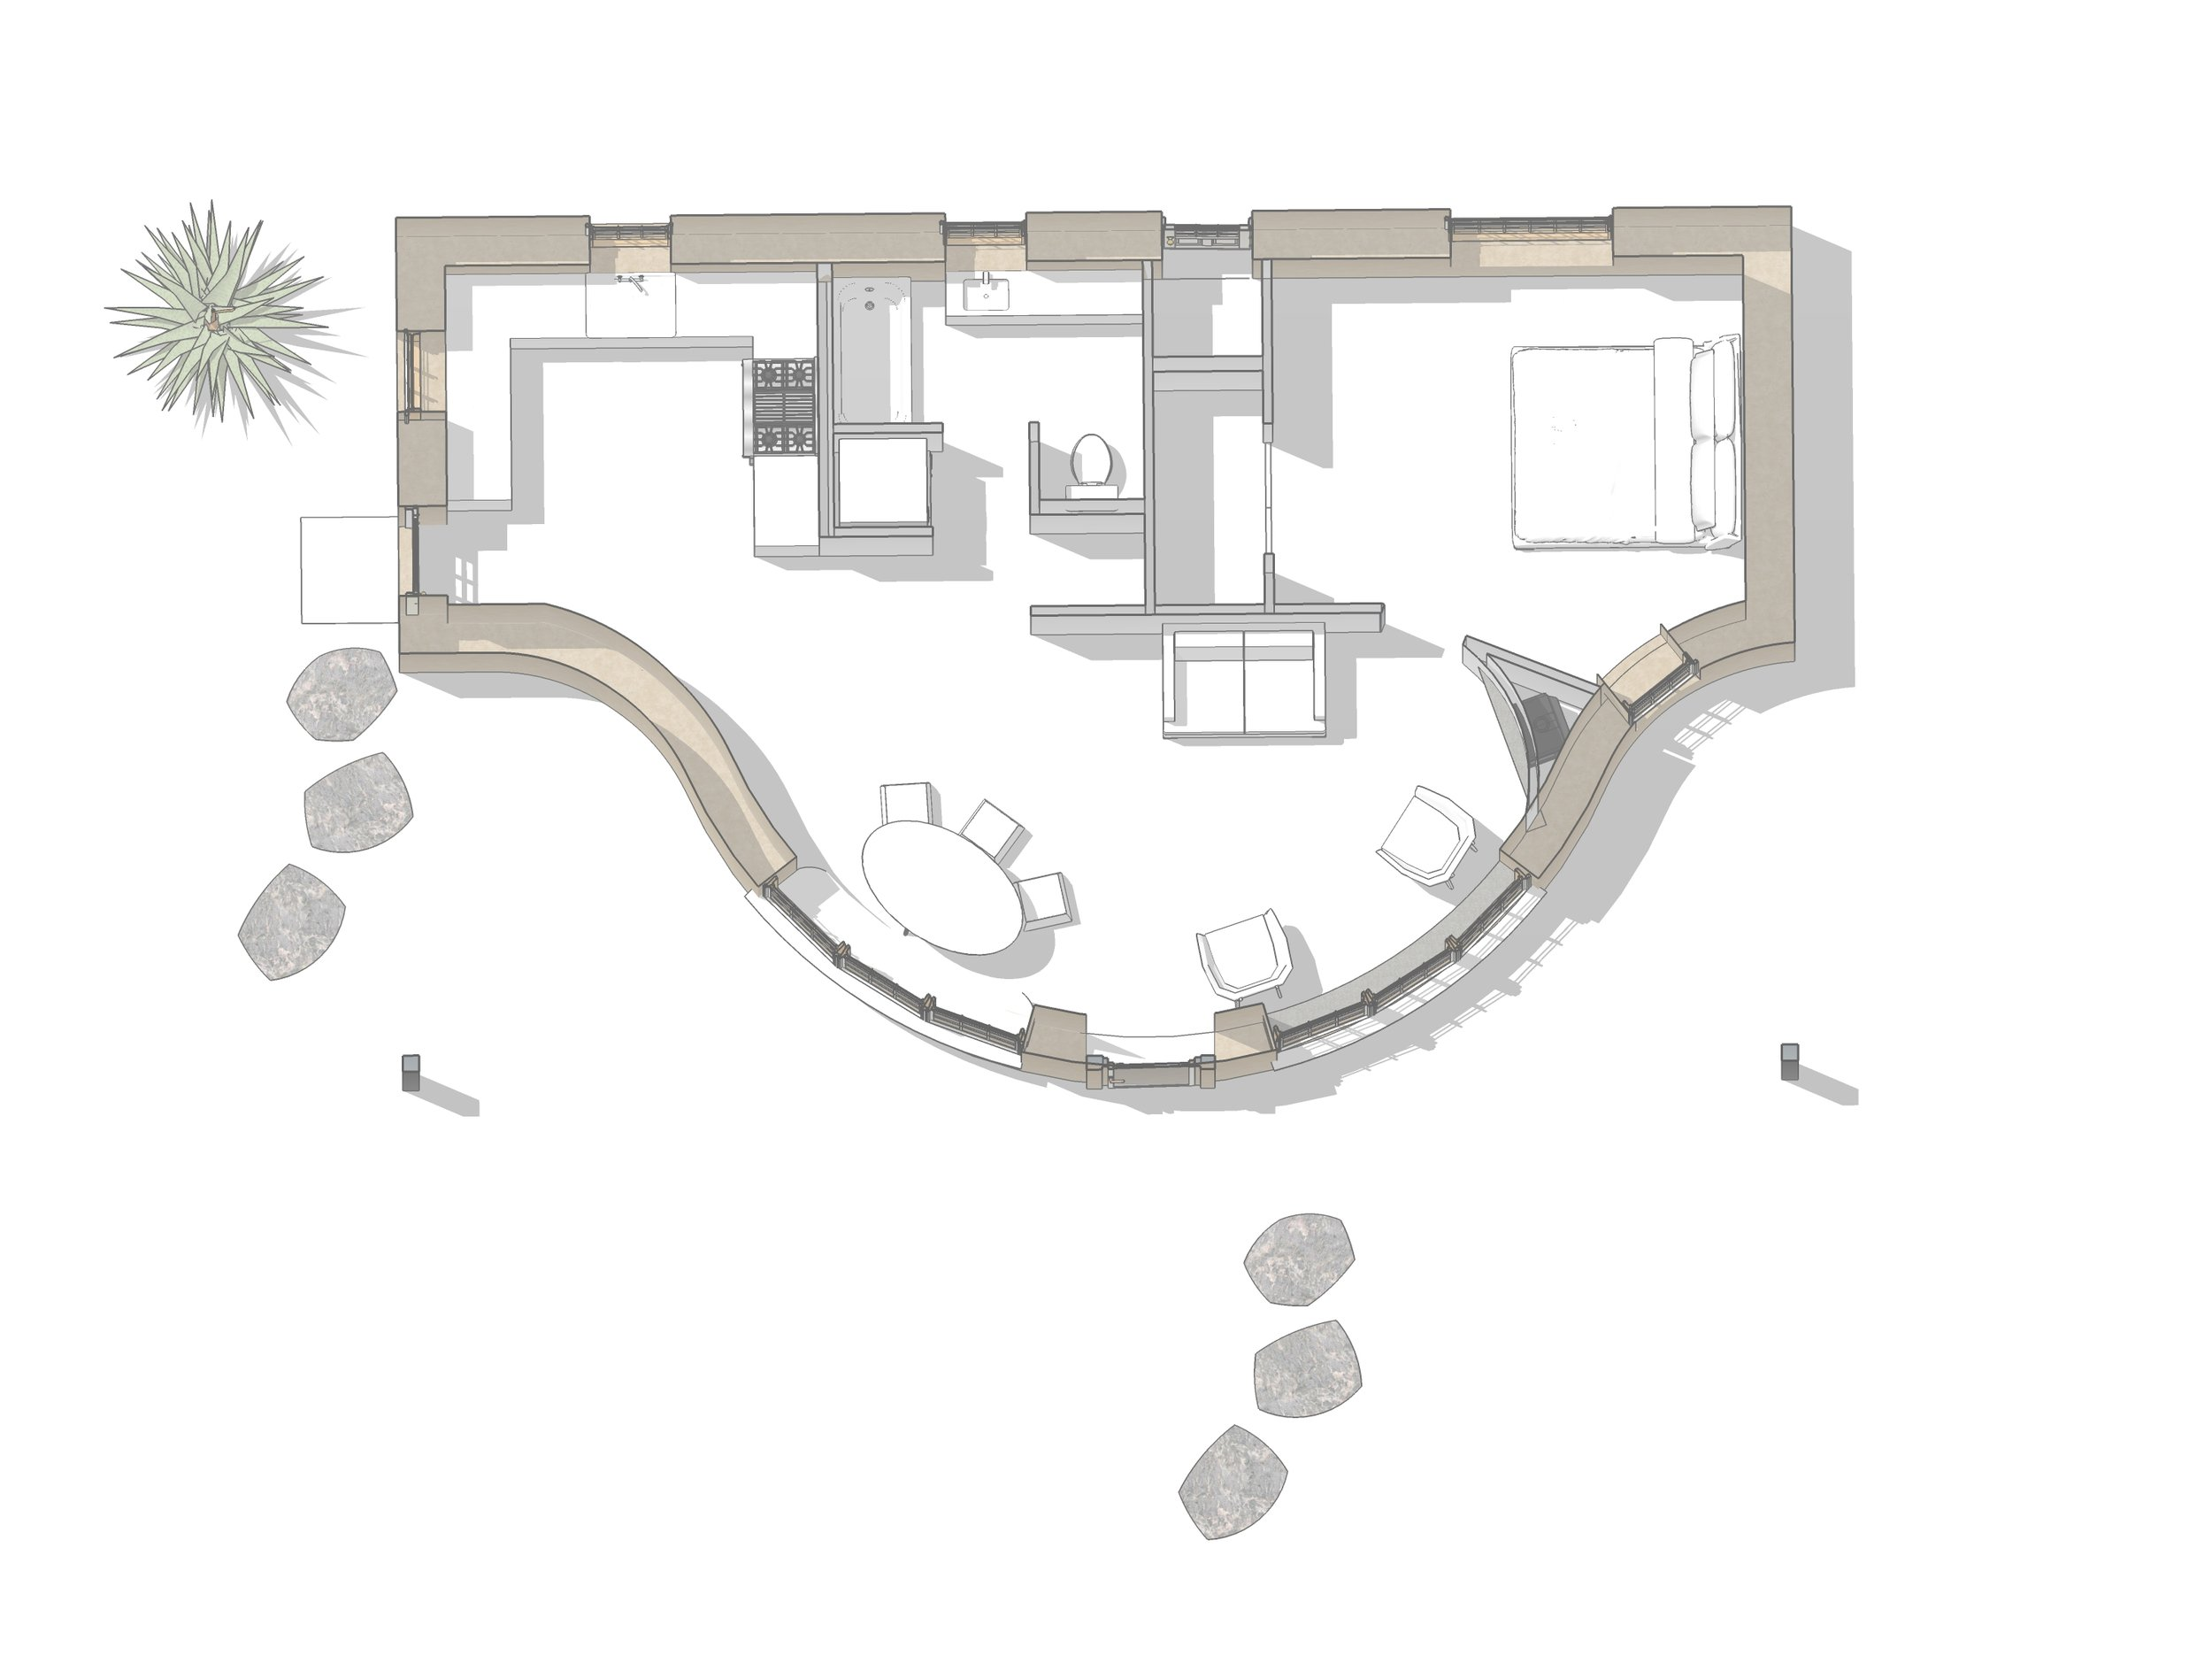 - Create a floor plan that has just what you need and nothing more.